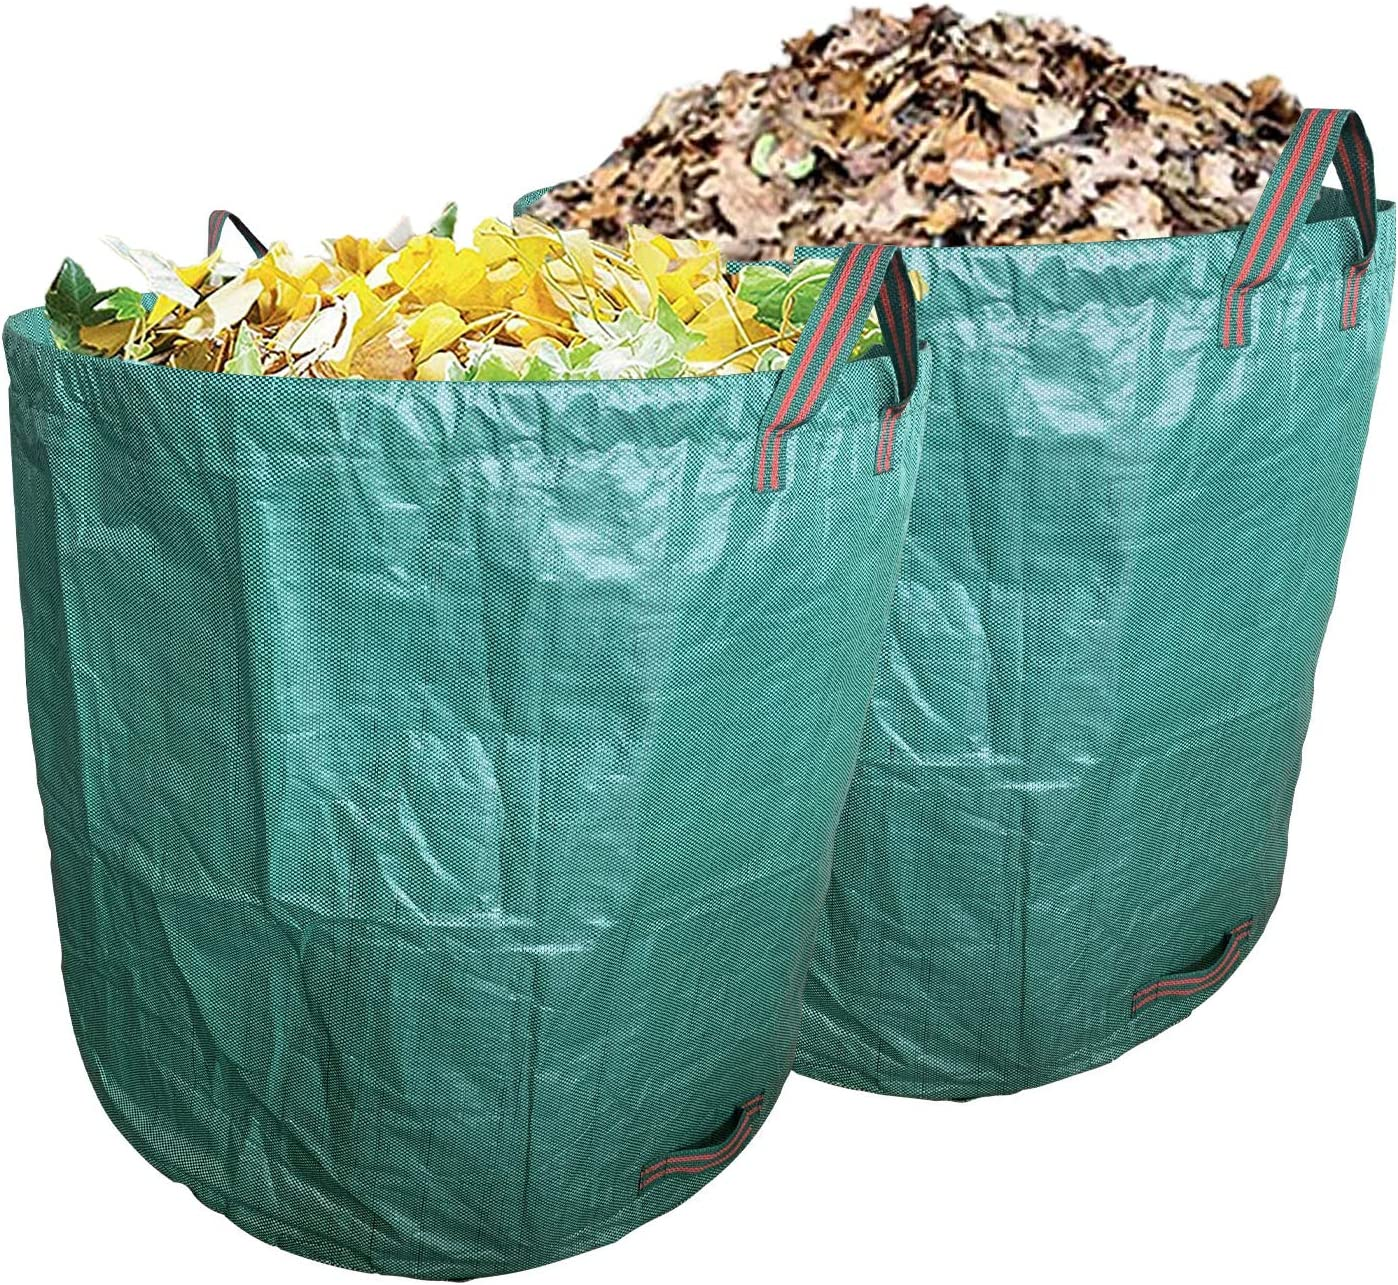 Ugold 2-Pack Garden Bag, Reusable Yard Waste Bag, Leaf Bag, Work for Garden, Lawn and Patio, Clean Up Leaves and Waste (2-Pack 132 Gallons)